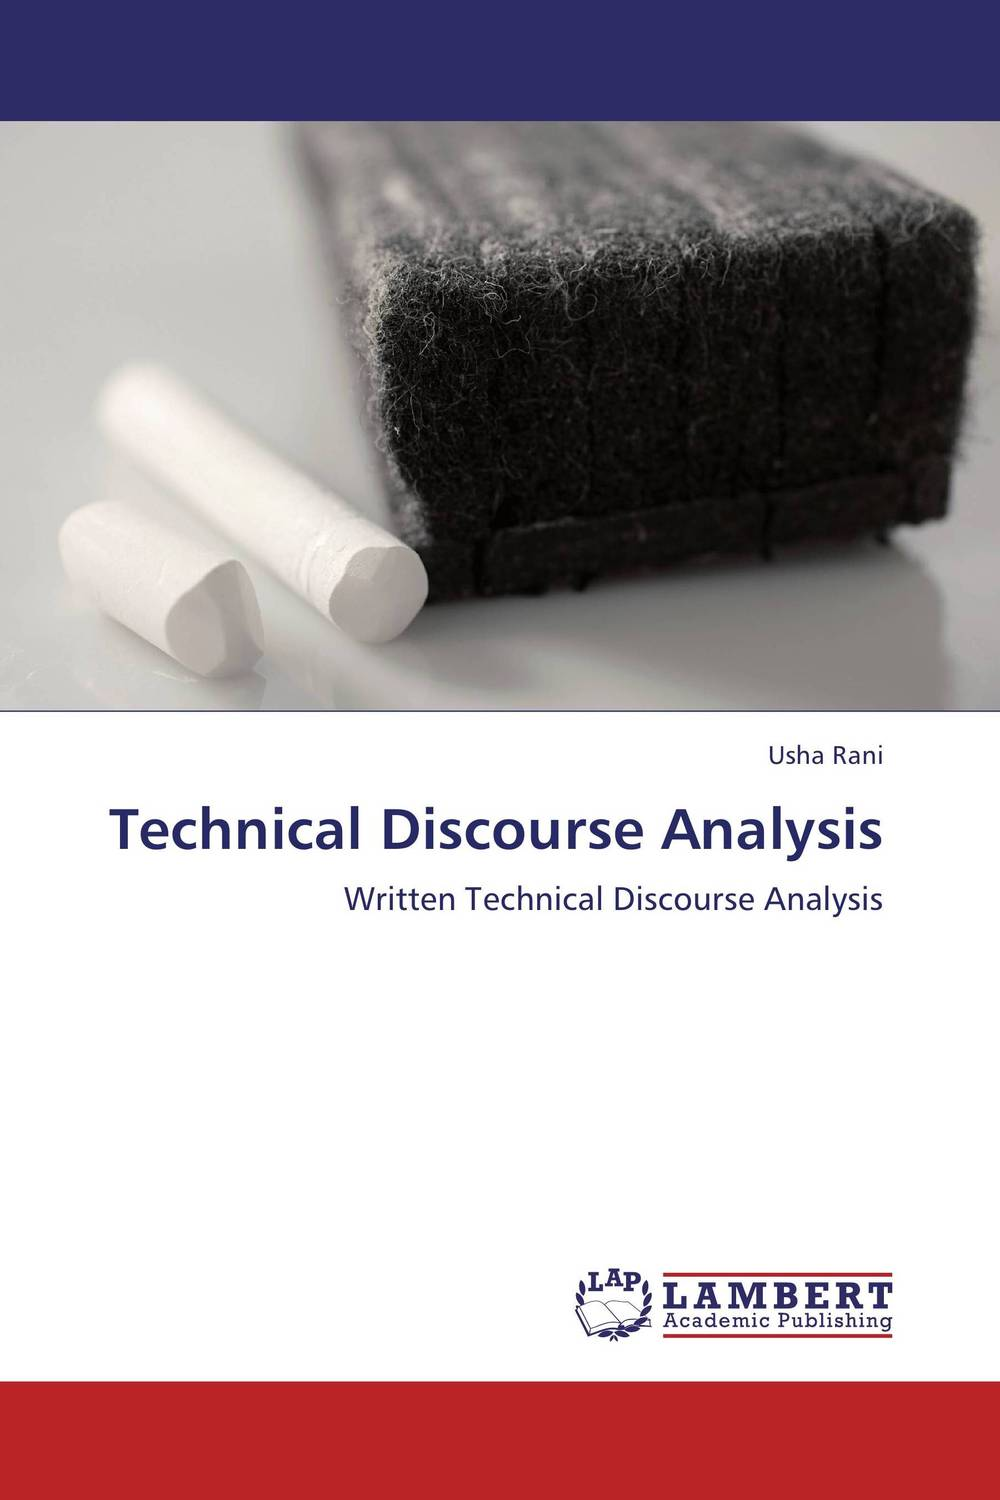 Technical Discourse Analysis рюкзак everhill cel16 pcu700c 18л